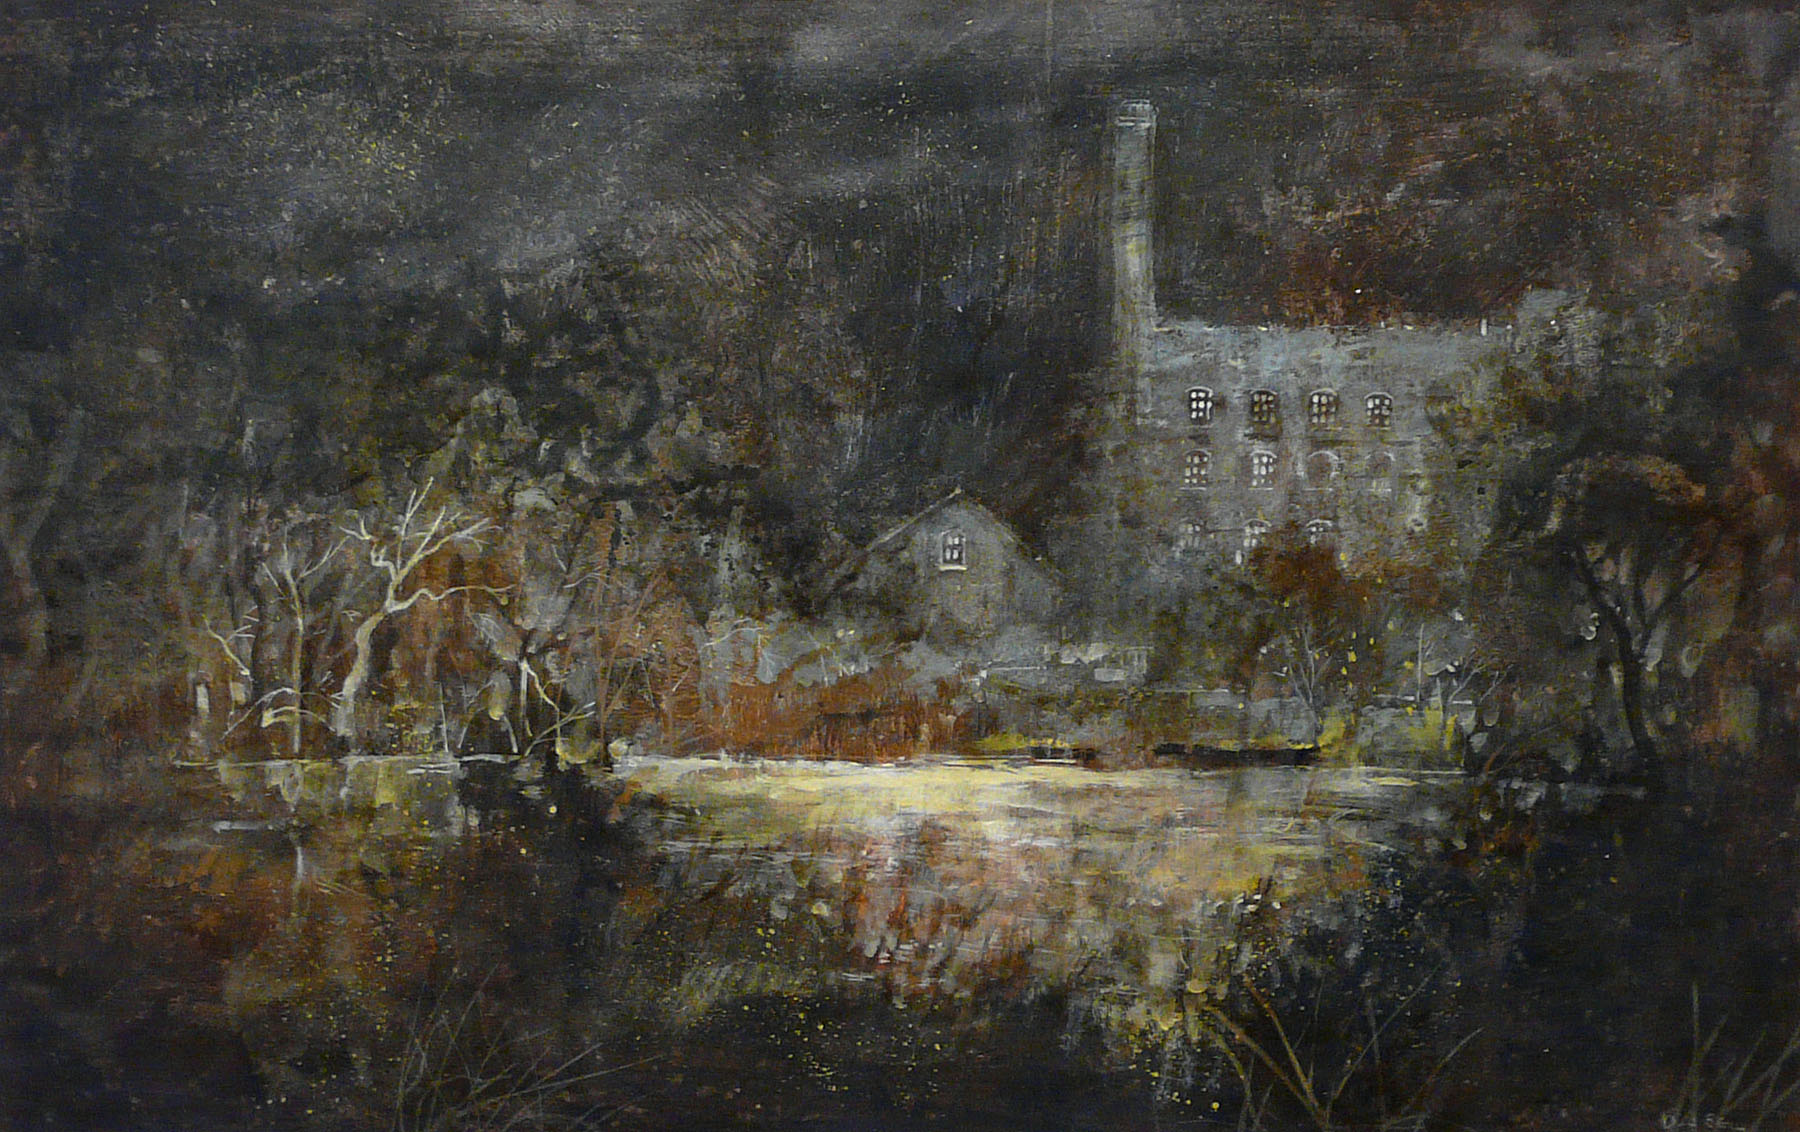 Still of the Night by David Bez, Northern | Industrial | Landscape | Nostalgic | Local